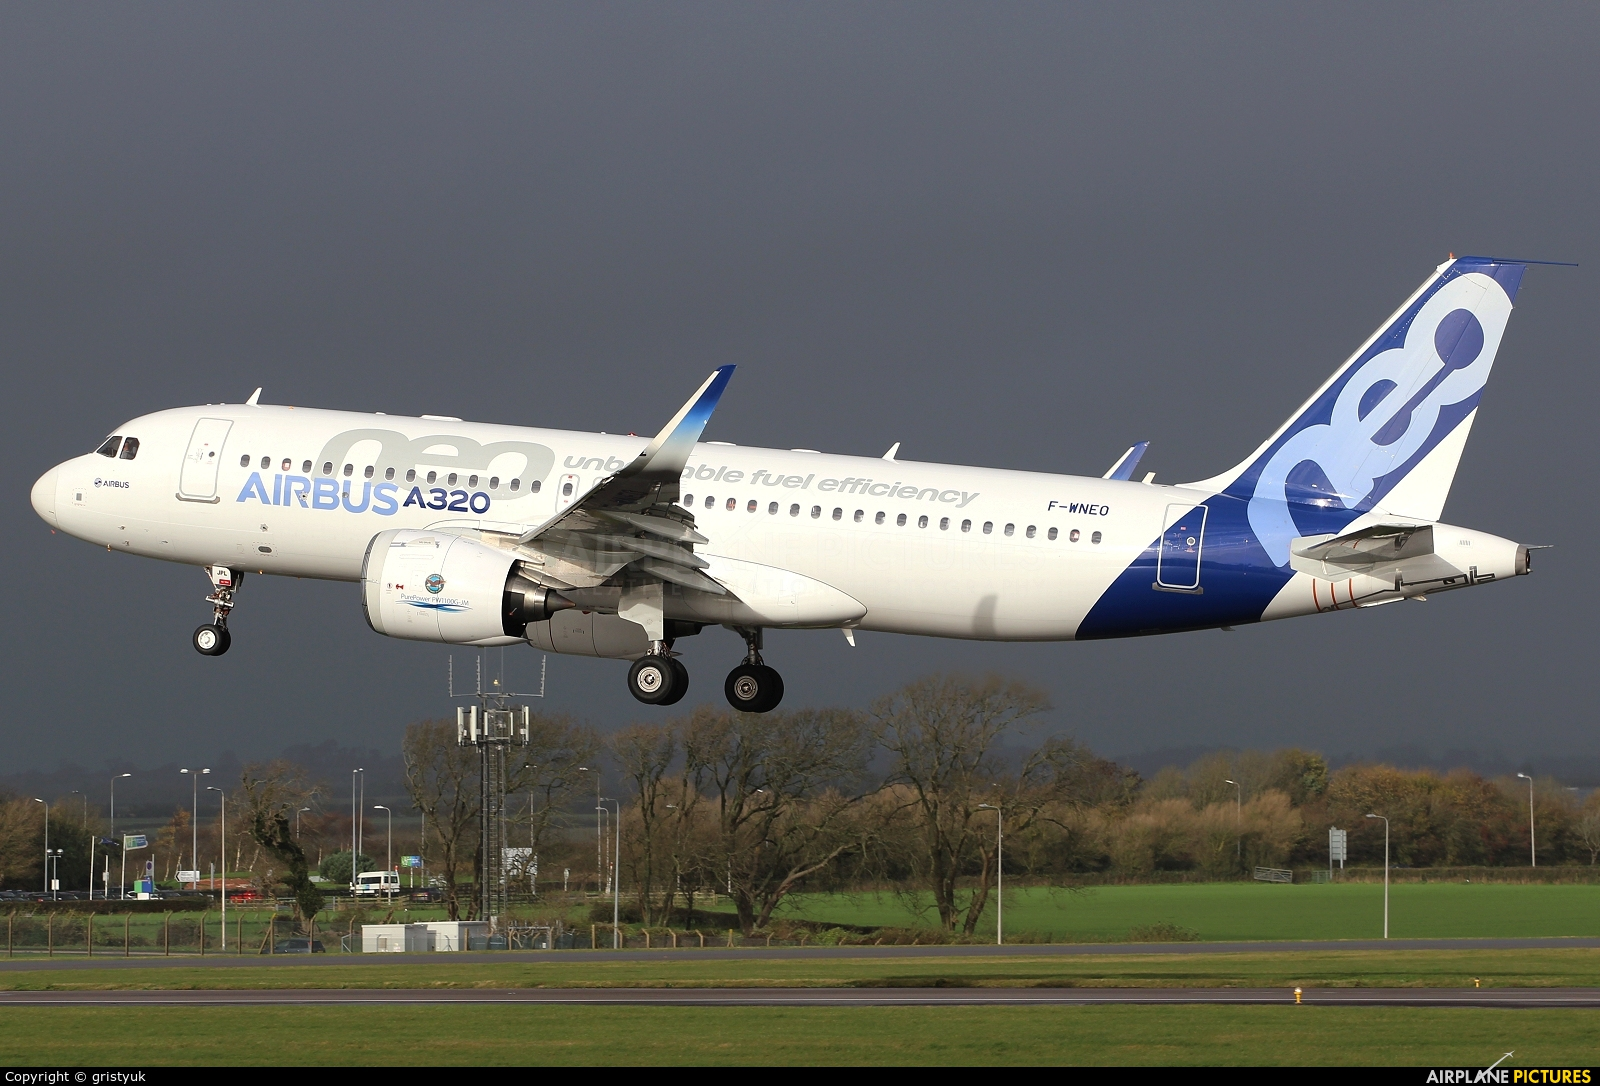 Airbus Industrie F-WNEO aircraft at Cardiff